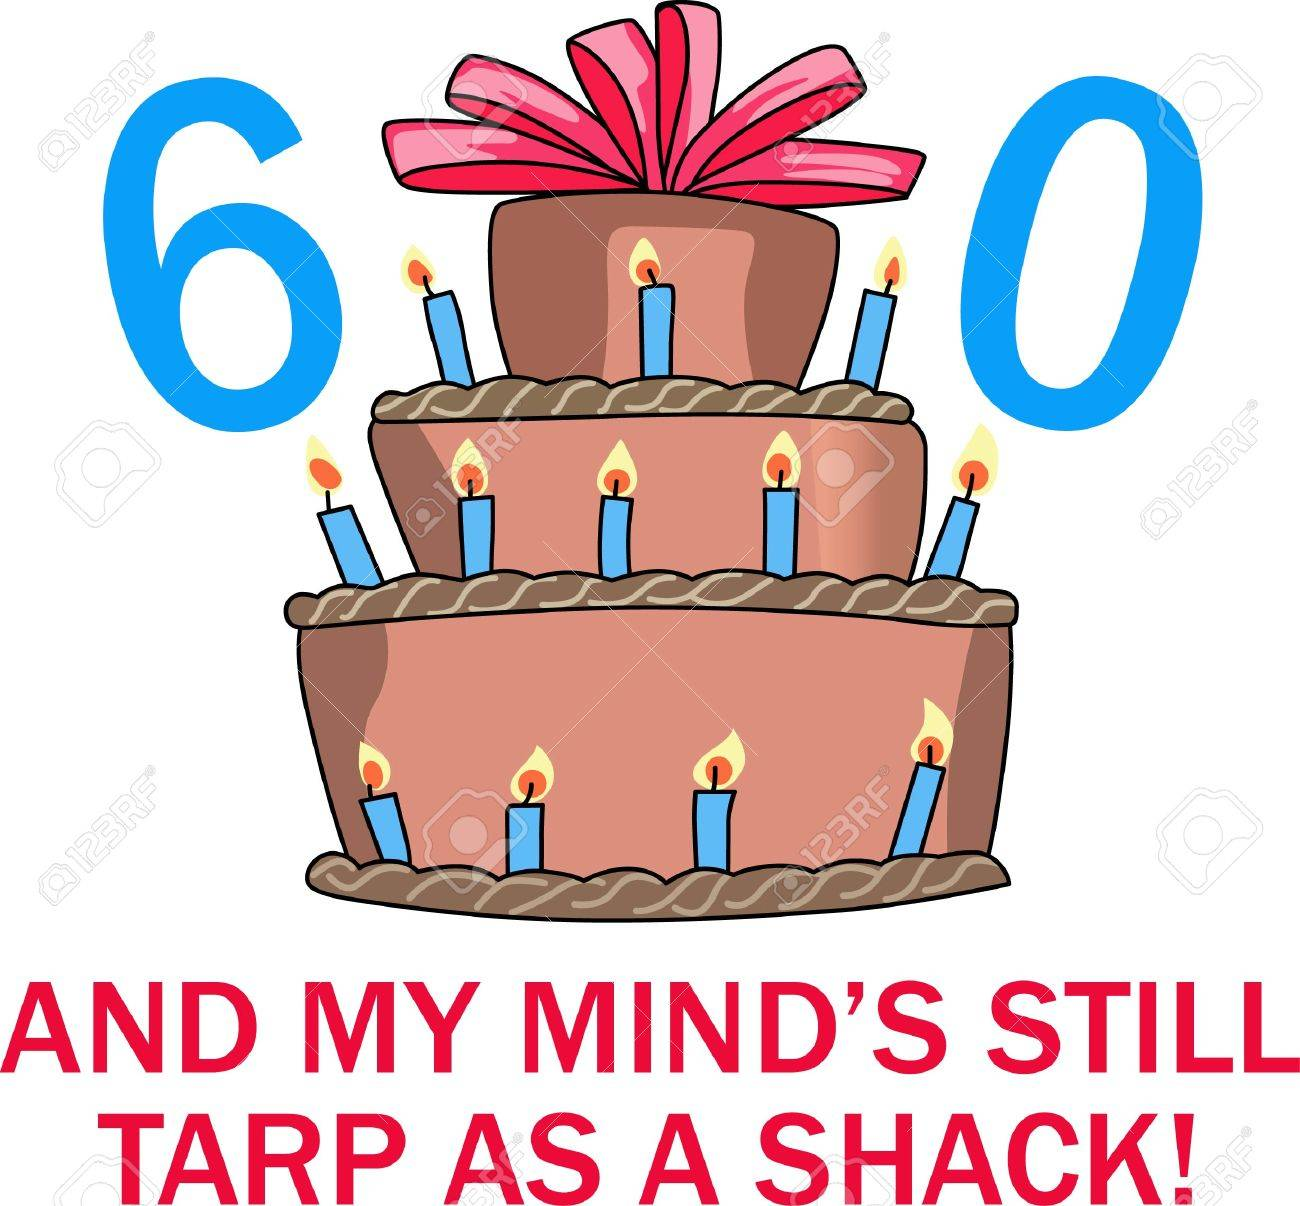 Clipart 60 birthday png free download 60th birthday clipart 7 » Clipart Station png free download